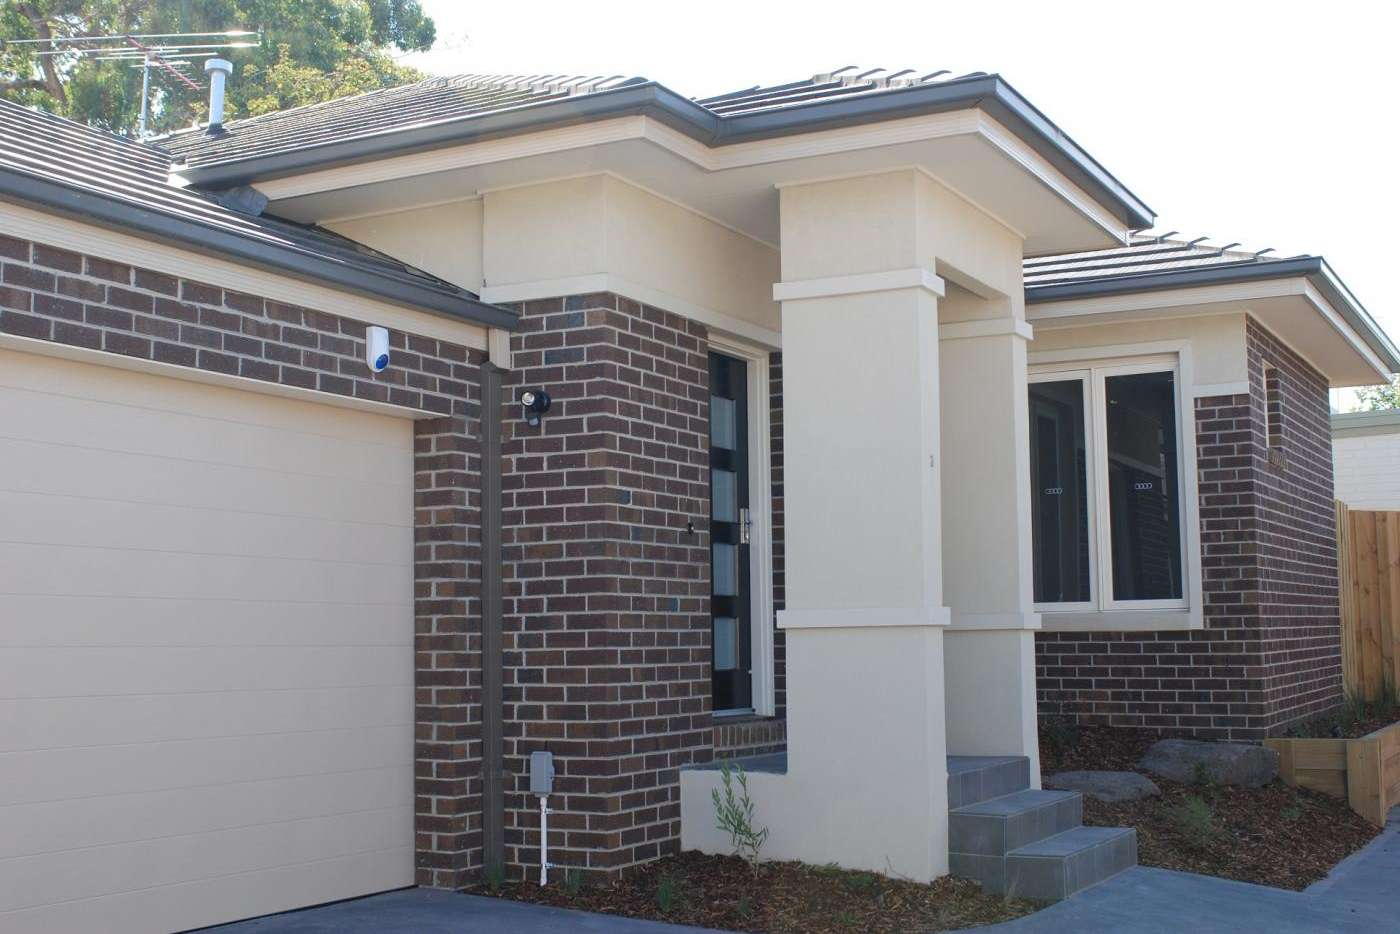 Main view of Homely townhouse listing, 3/49-51 Larch Crescent, Mount Waverley VIC 3149